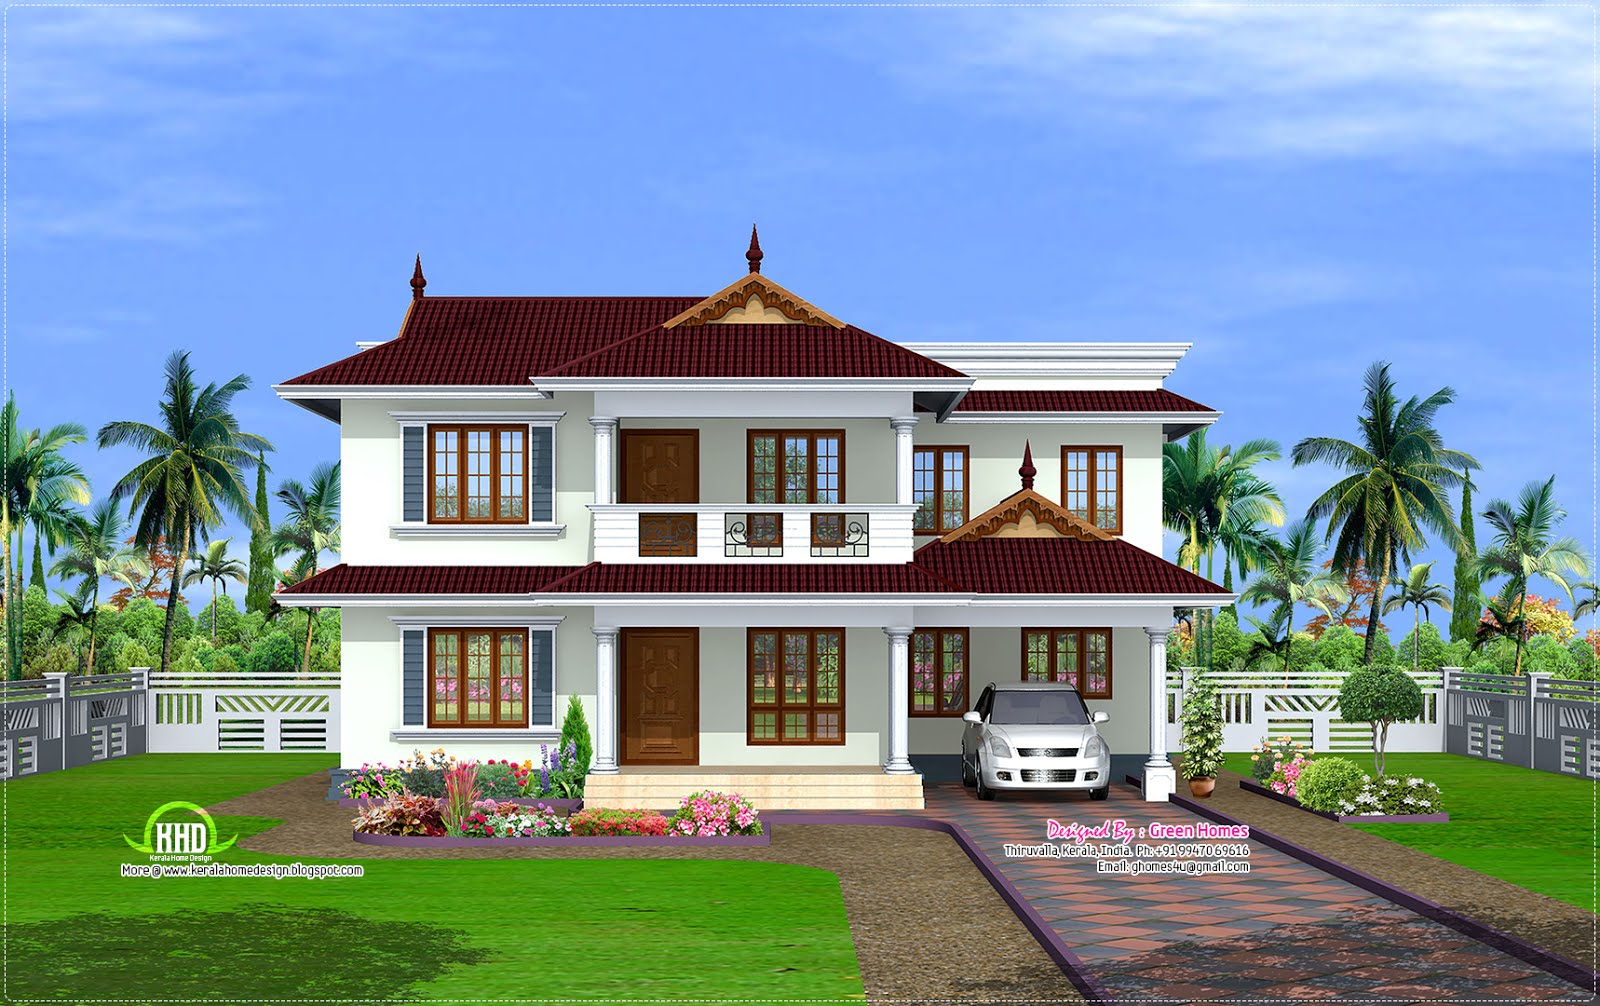 2600 kerala model house kerala home design and floor plans - House images ...